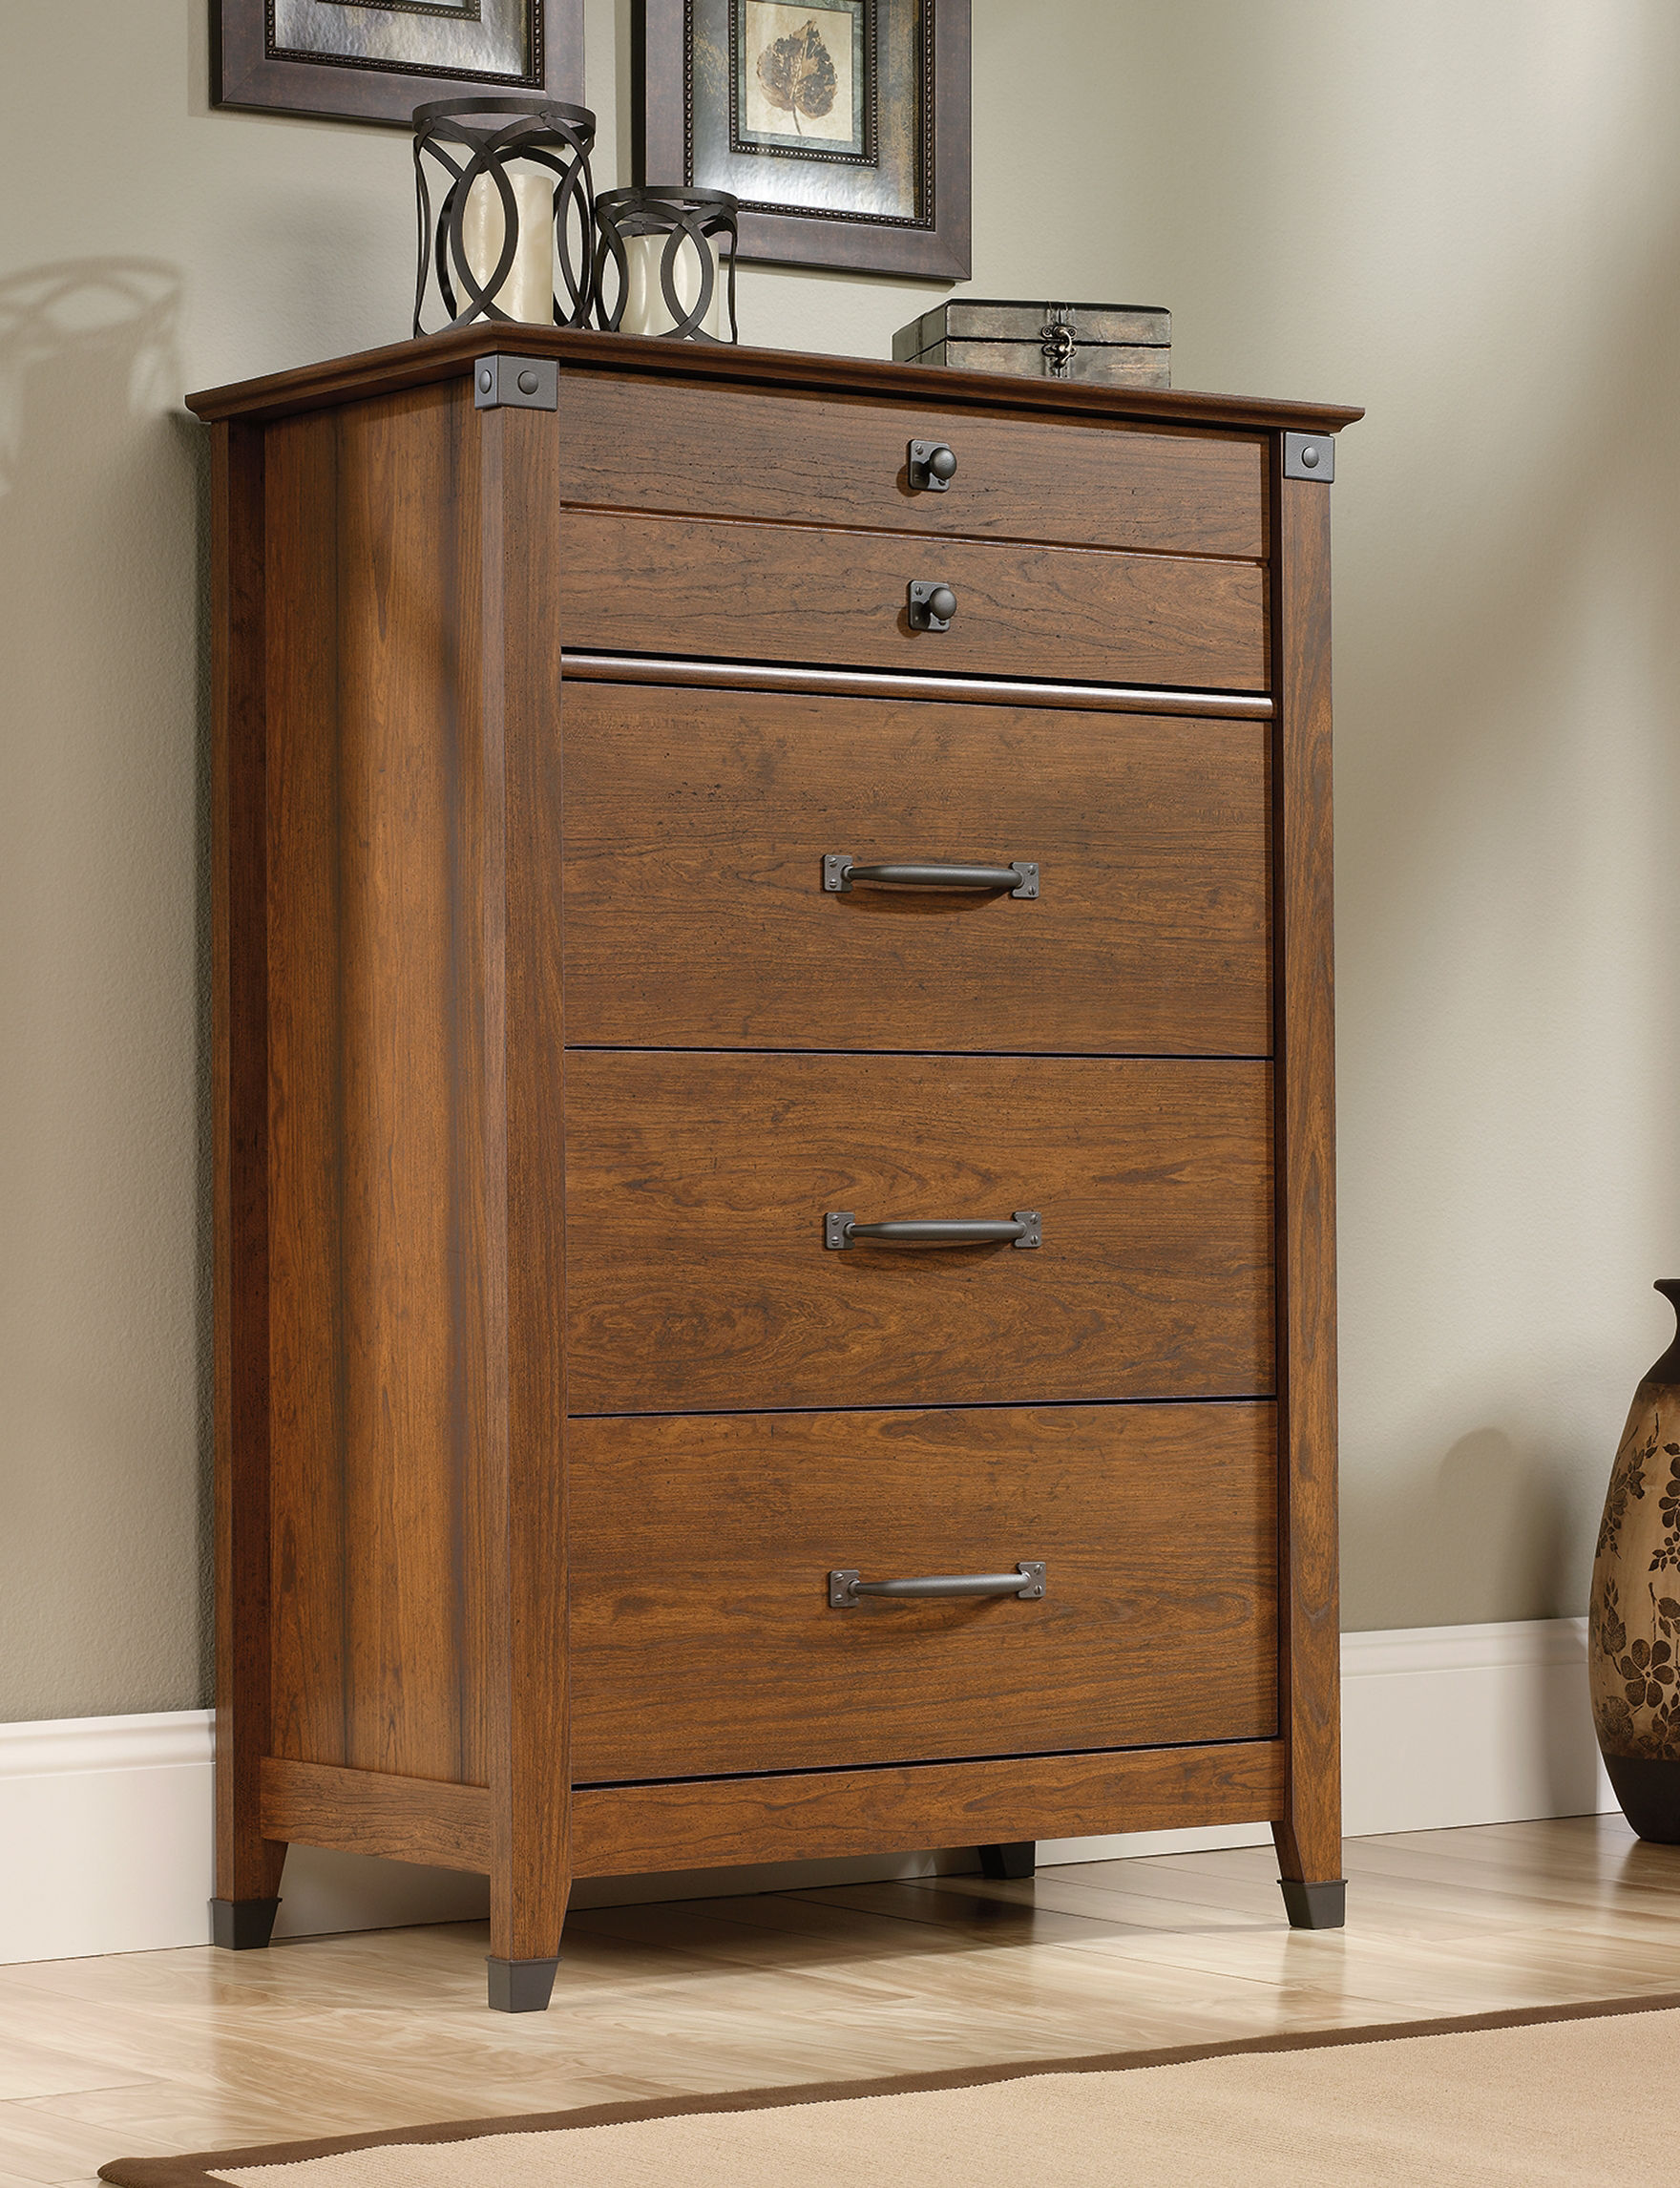 Sauder Brown Dressers & Chests Bedroom Furniture